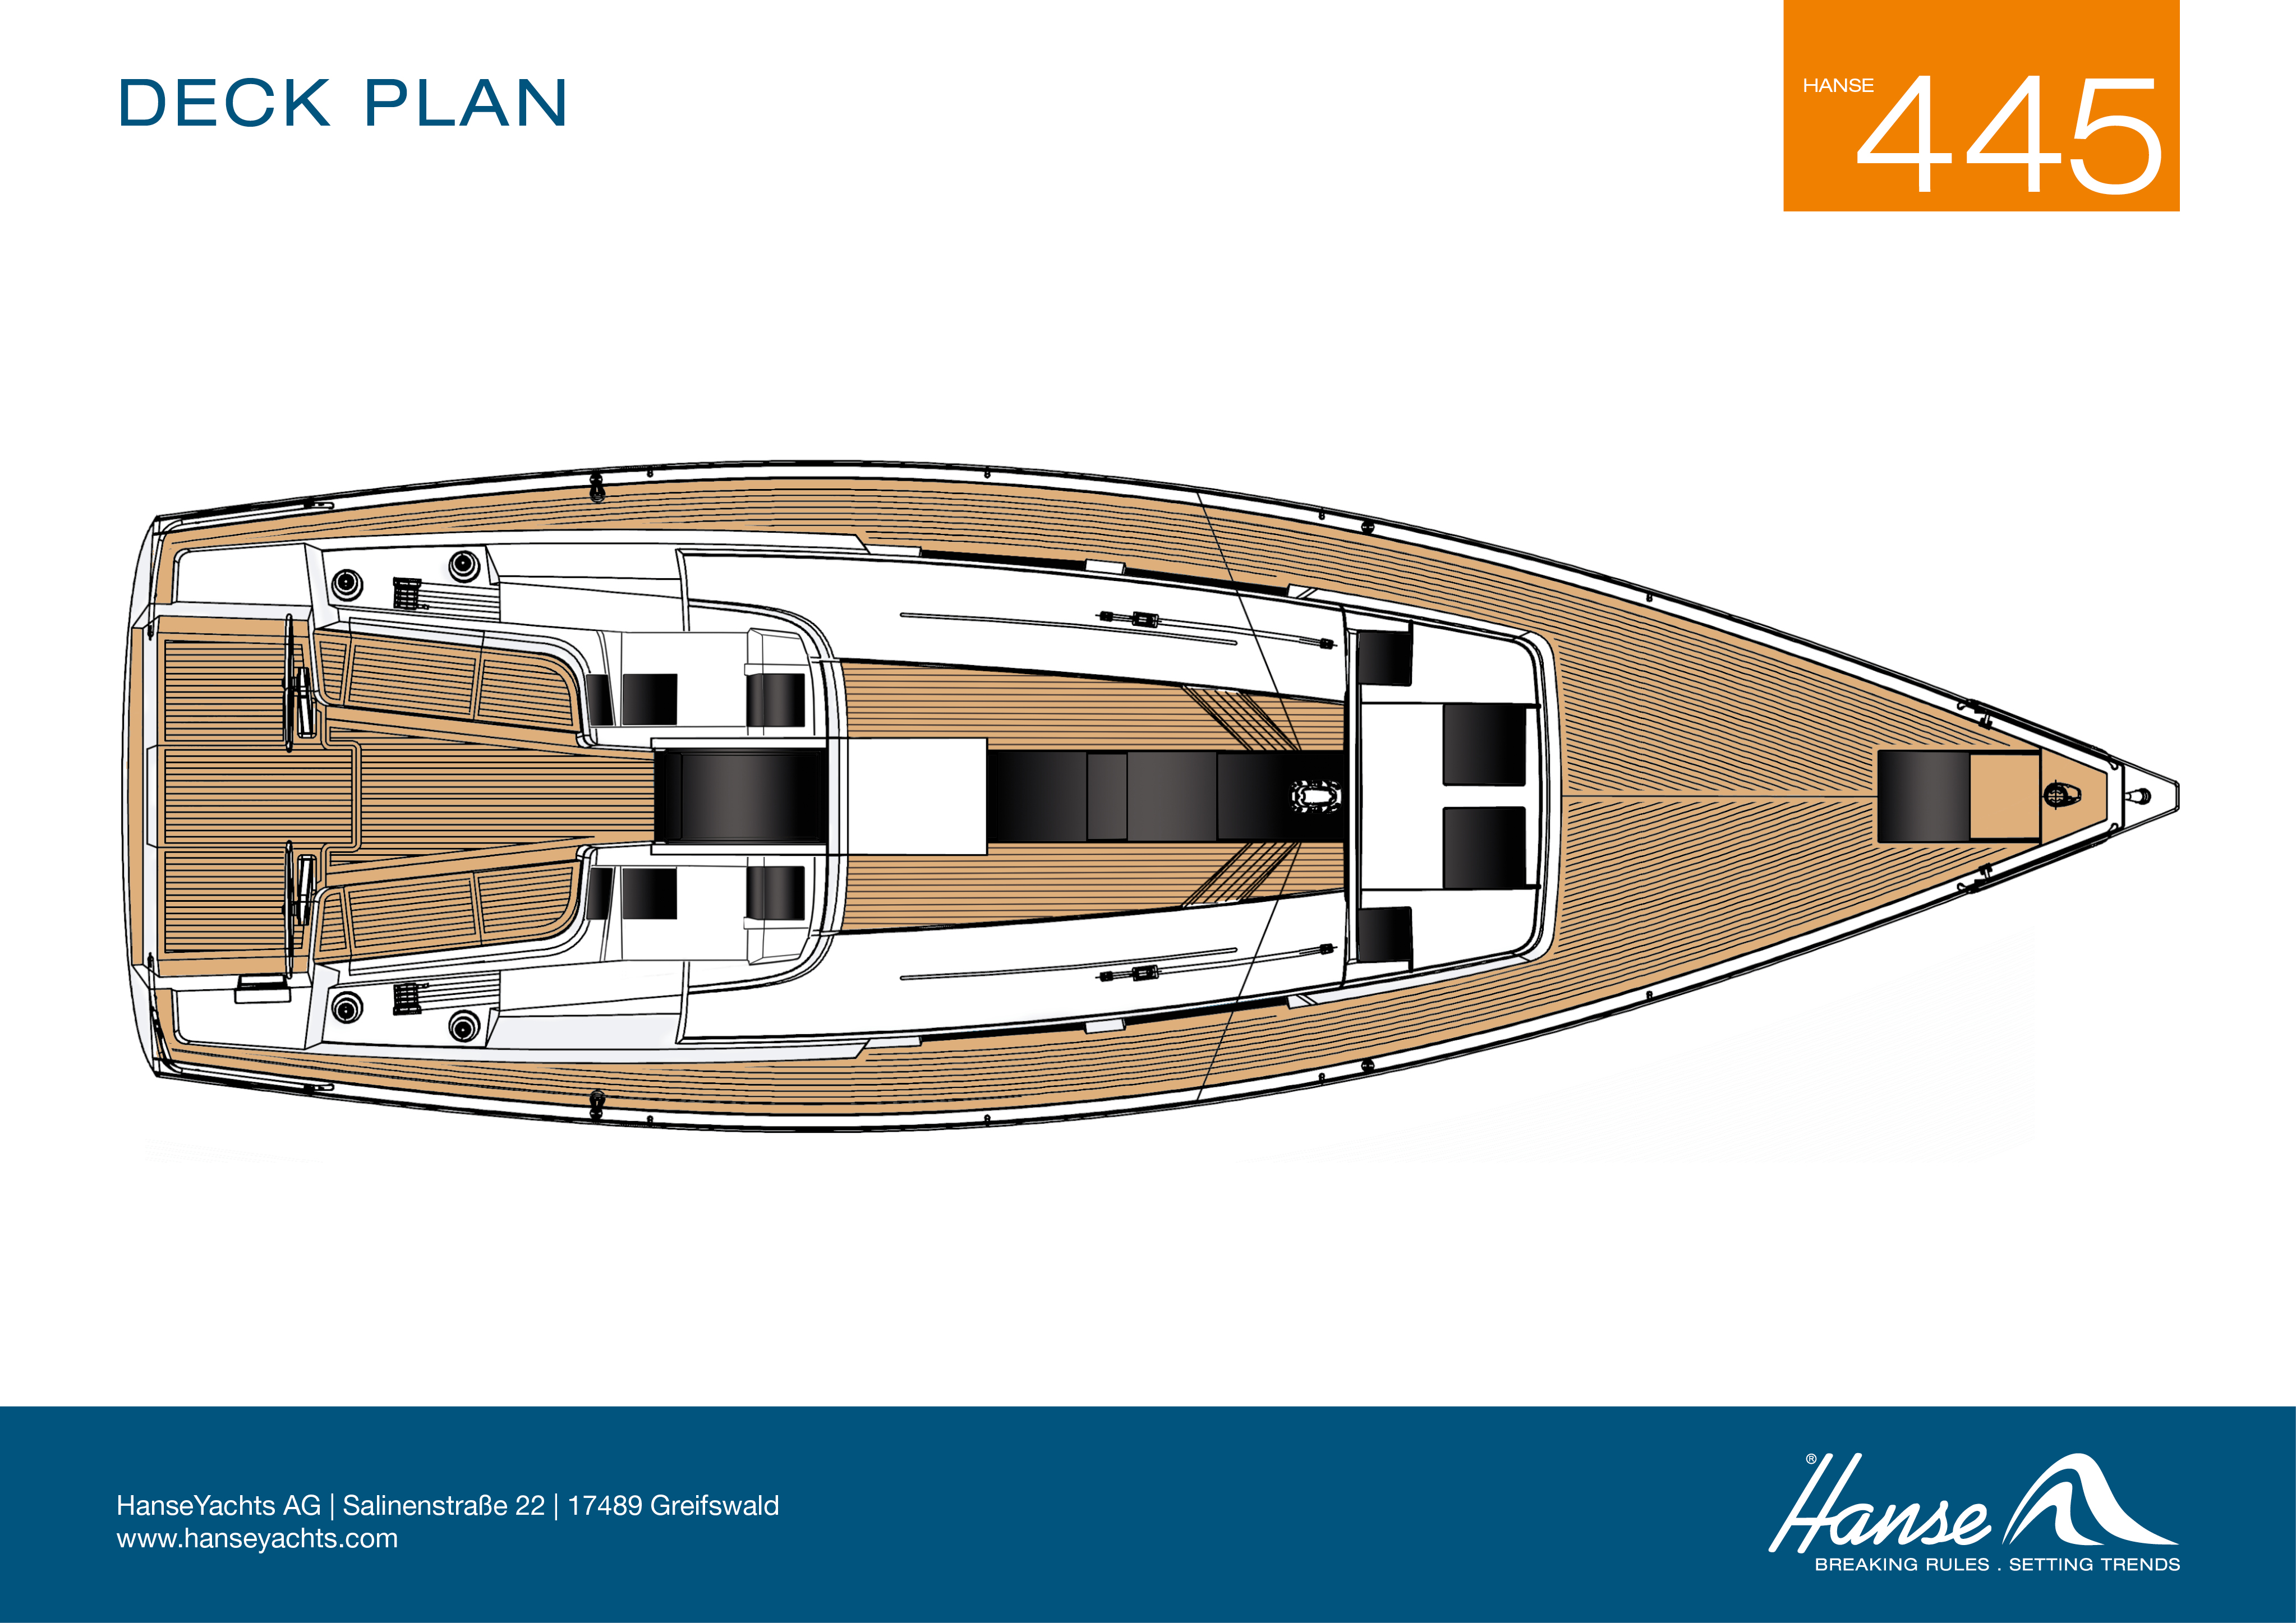 Hanse 445 - Hanse_2014_445_Deck_Plan_Design-64272.jpg